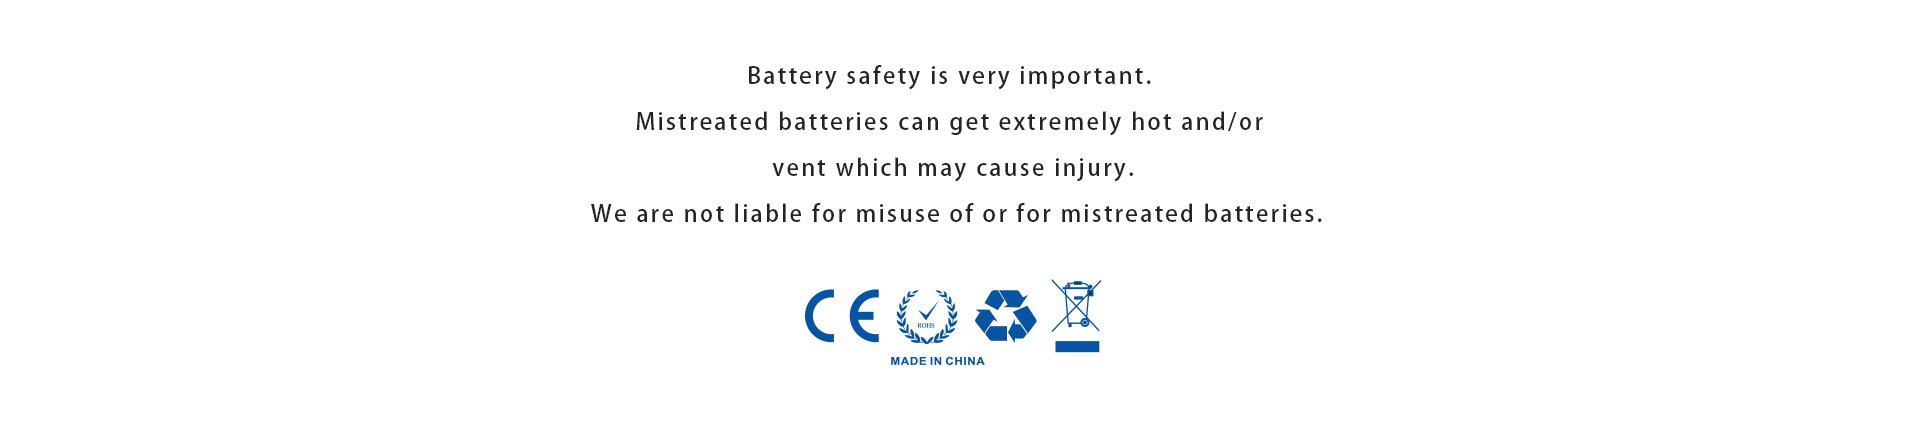 Advken 21700 Battery safety